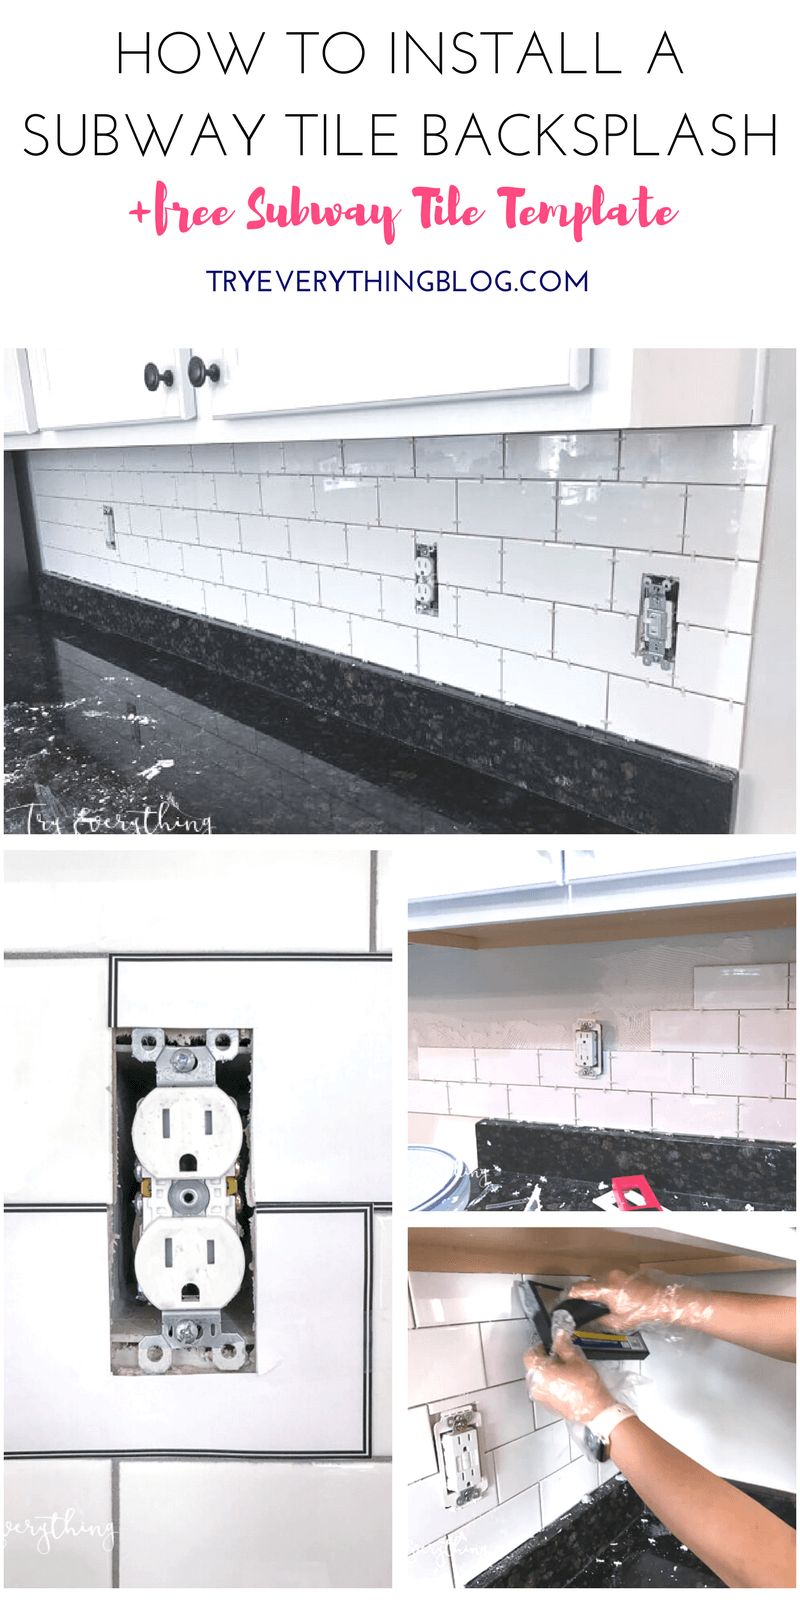 How to Install a Subway Tile Backsplash (+FREE Subway Tile Template ...